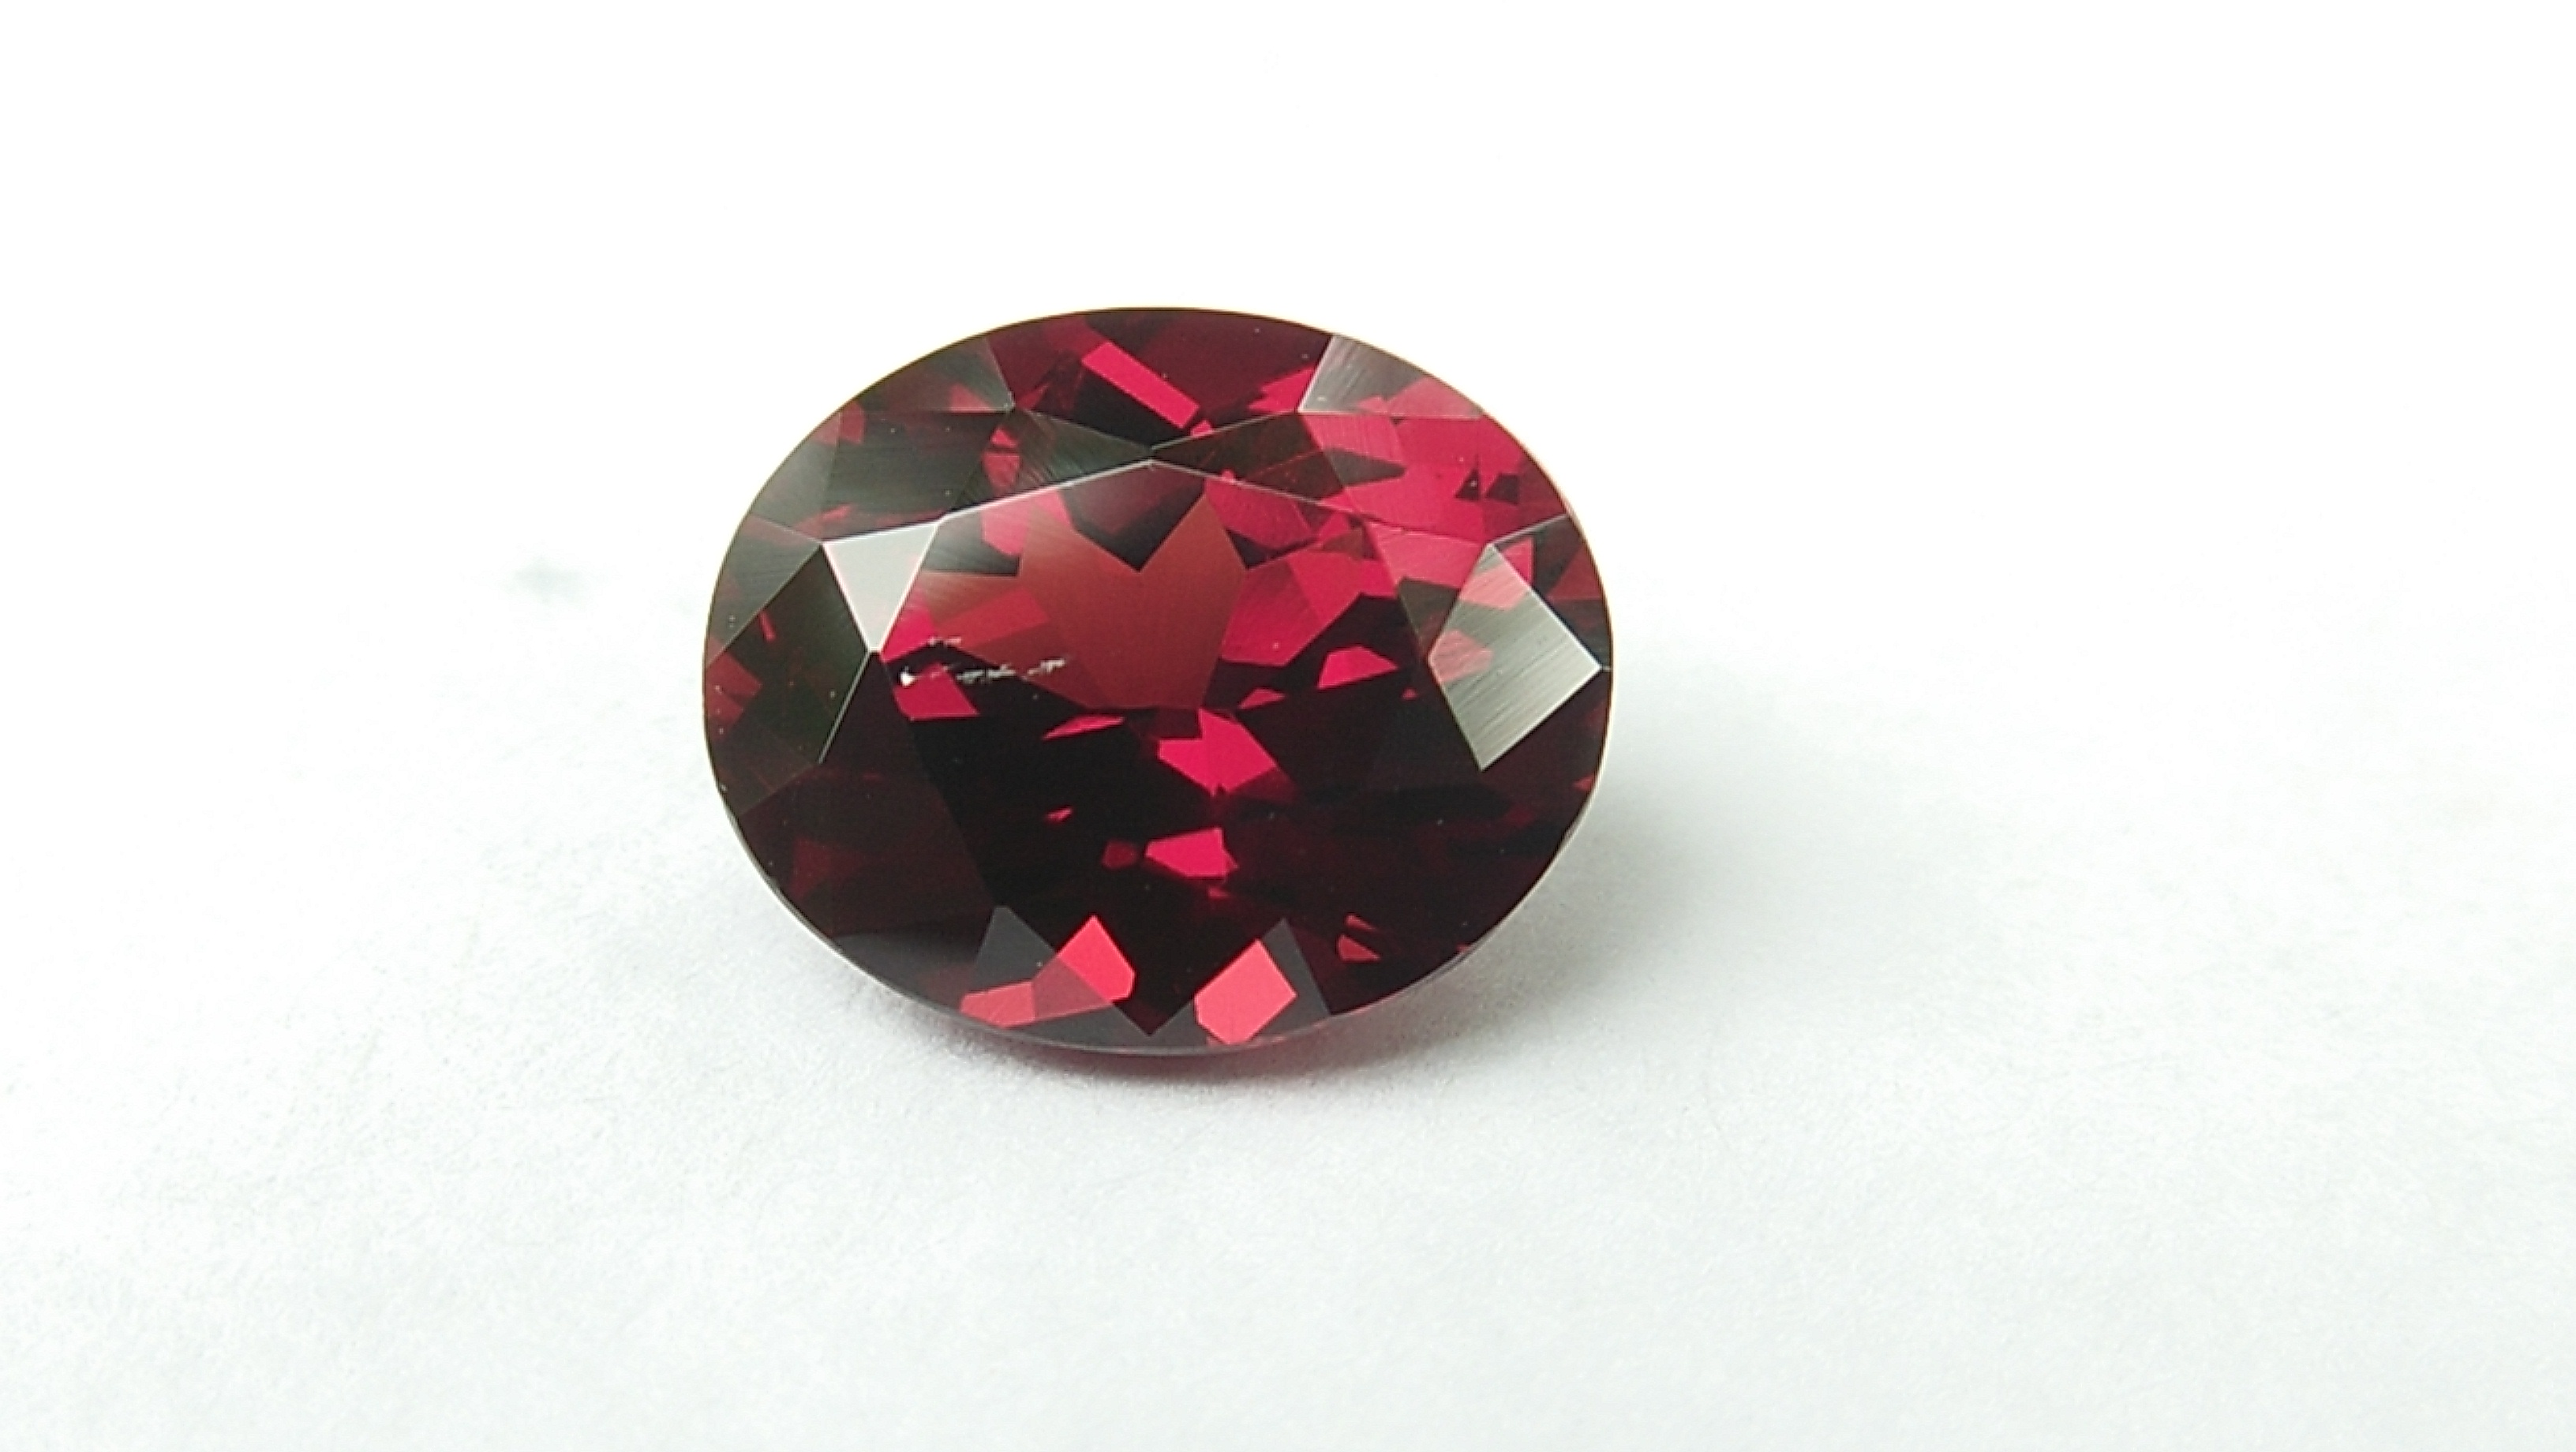 Ceylon Natural Pyrop Garnet Dimension : 8.2mm x 6.9mm x 4.6mm Weight : 2 Cts Shape : Ovel Colour : Red Clarity : Clean Mineral : Ratnapura Sri Lanka